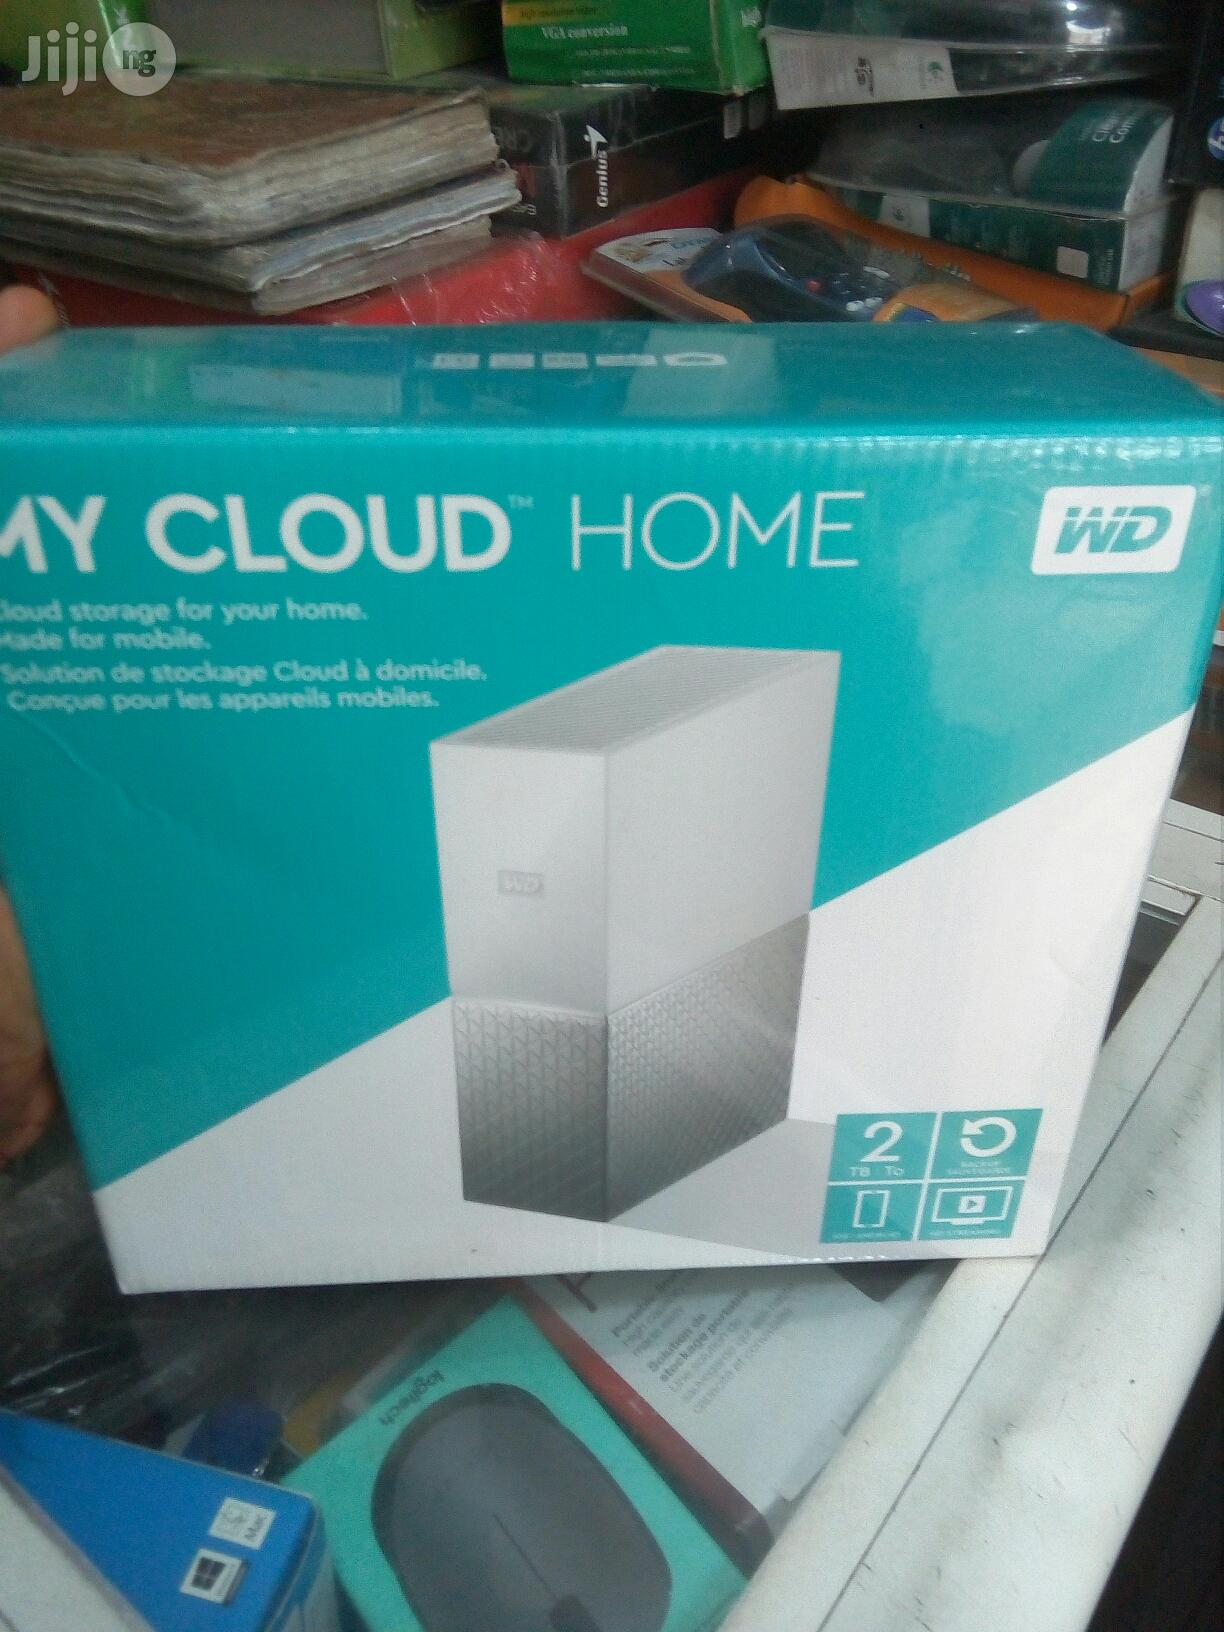 WD 2TB Cloud Home Personal Cloud Storage   Computer Hardware for sale in Ikeja, Lagos State, Nigeria